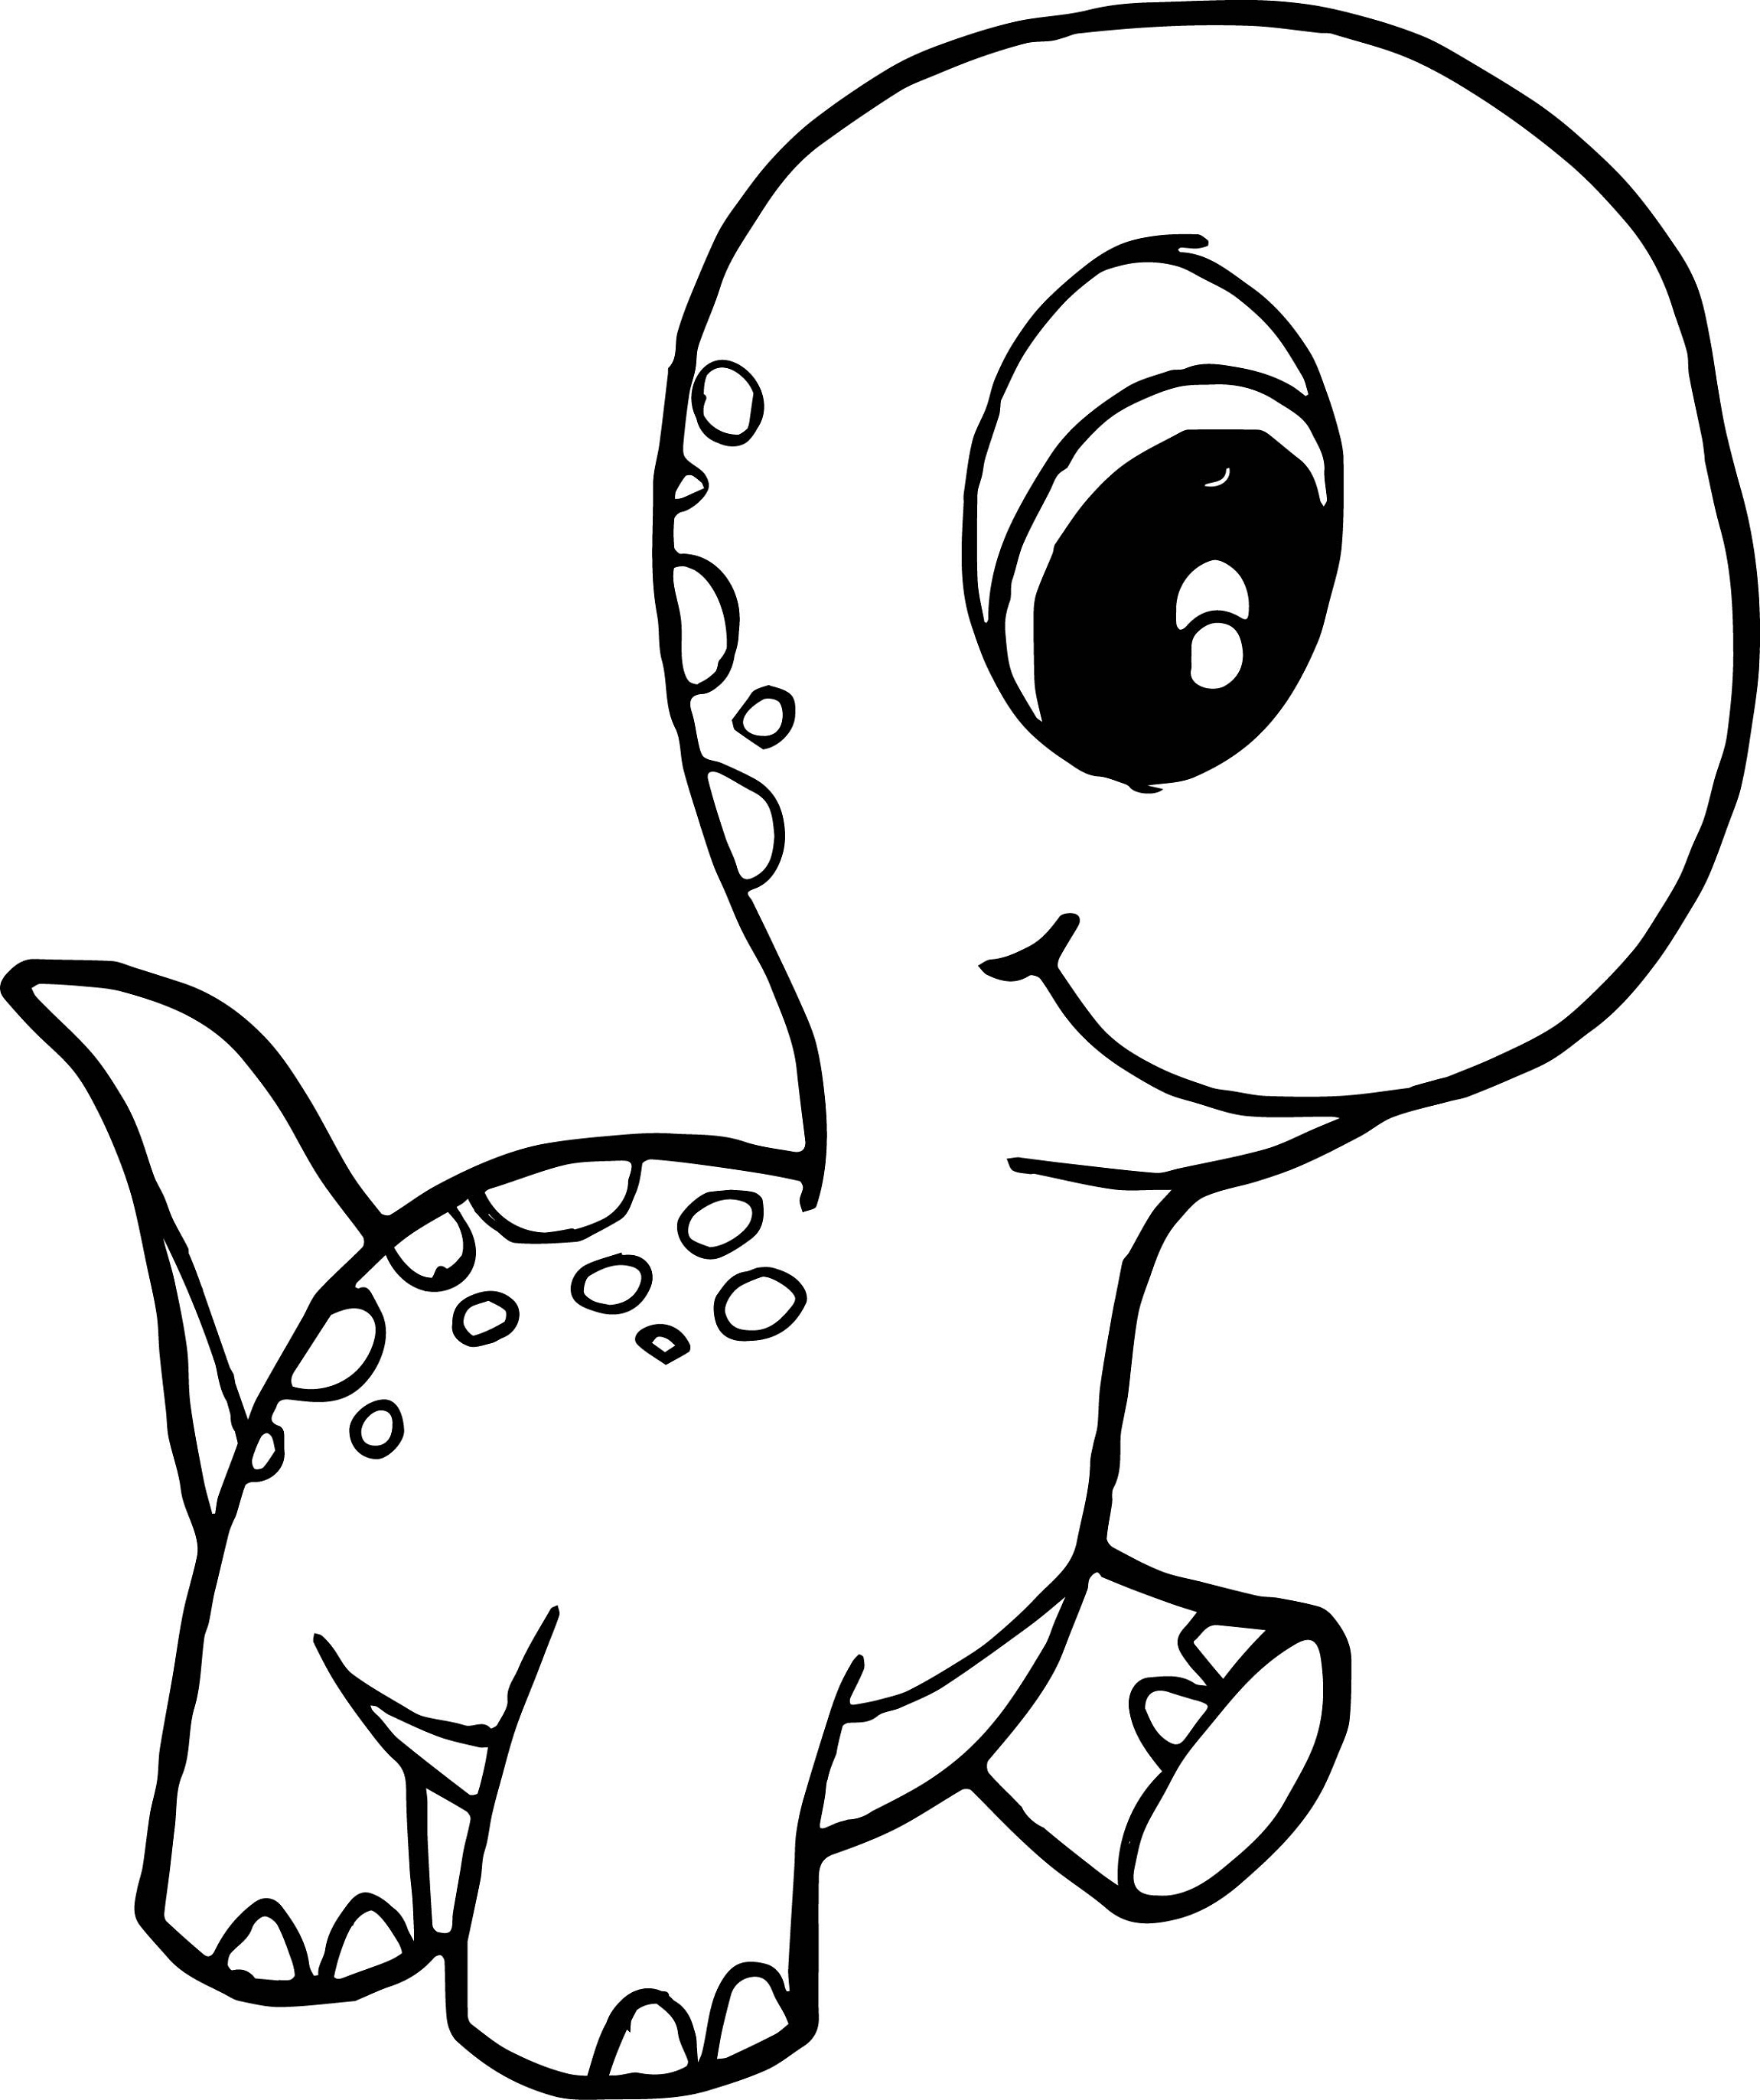 coloring pages dinosaurs coloring pages dinosaur free printable coloring pages dinosaurs coloring pages